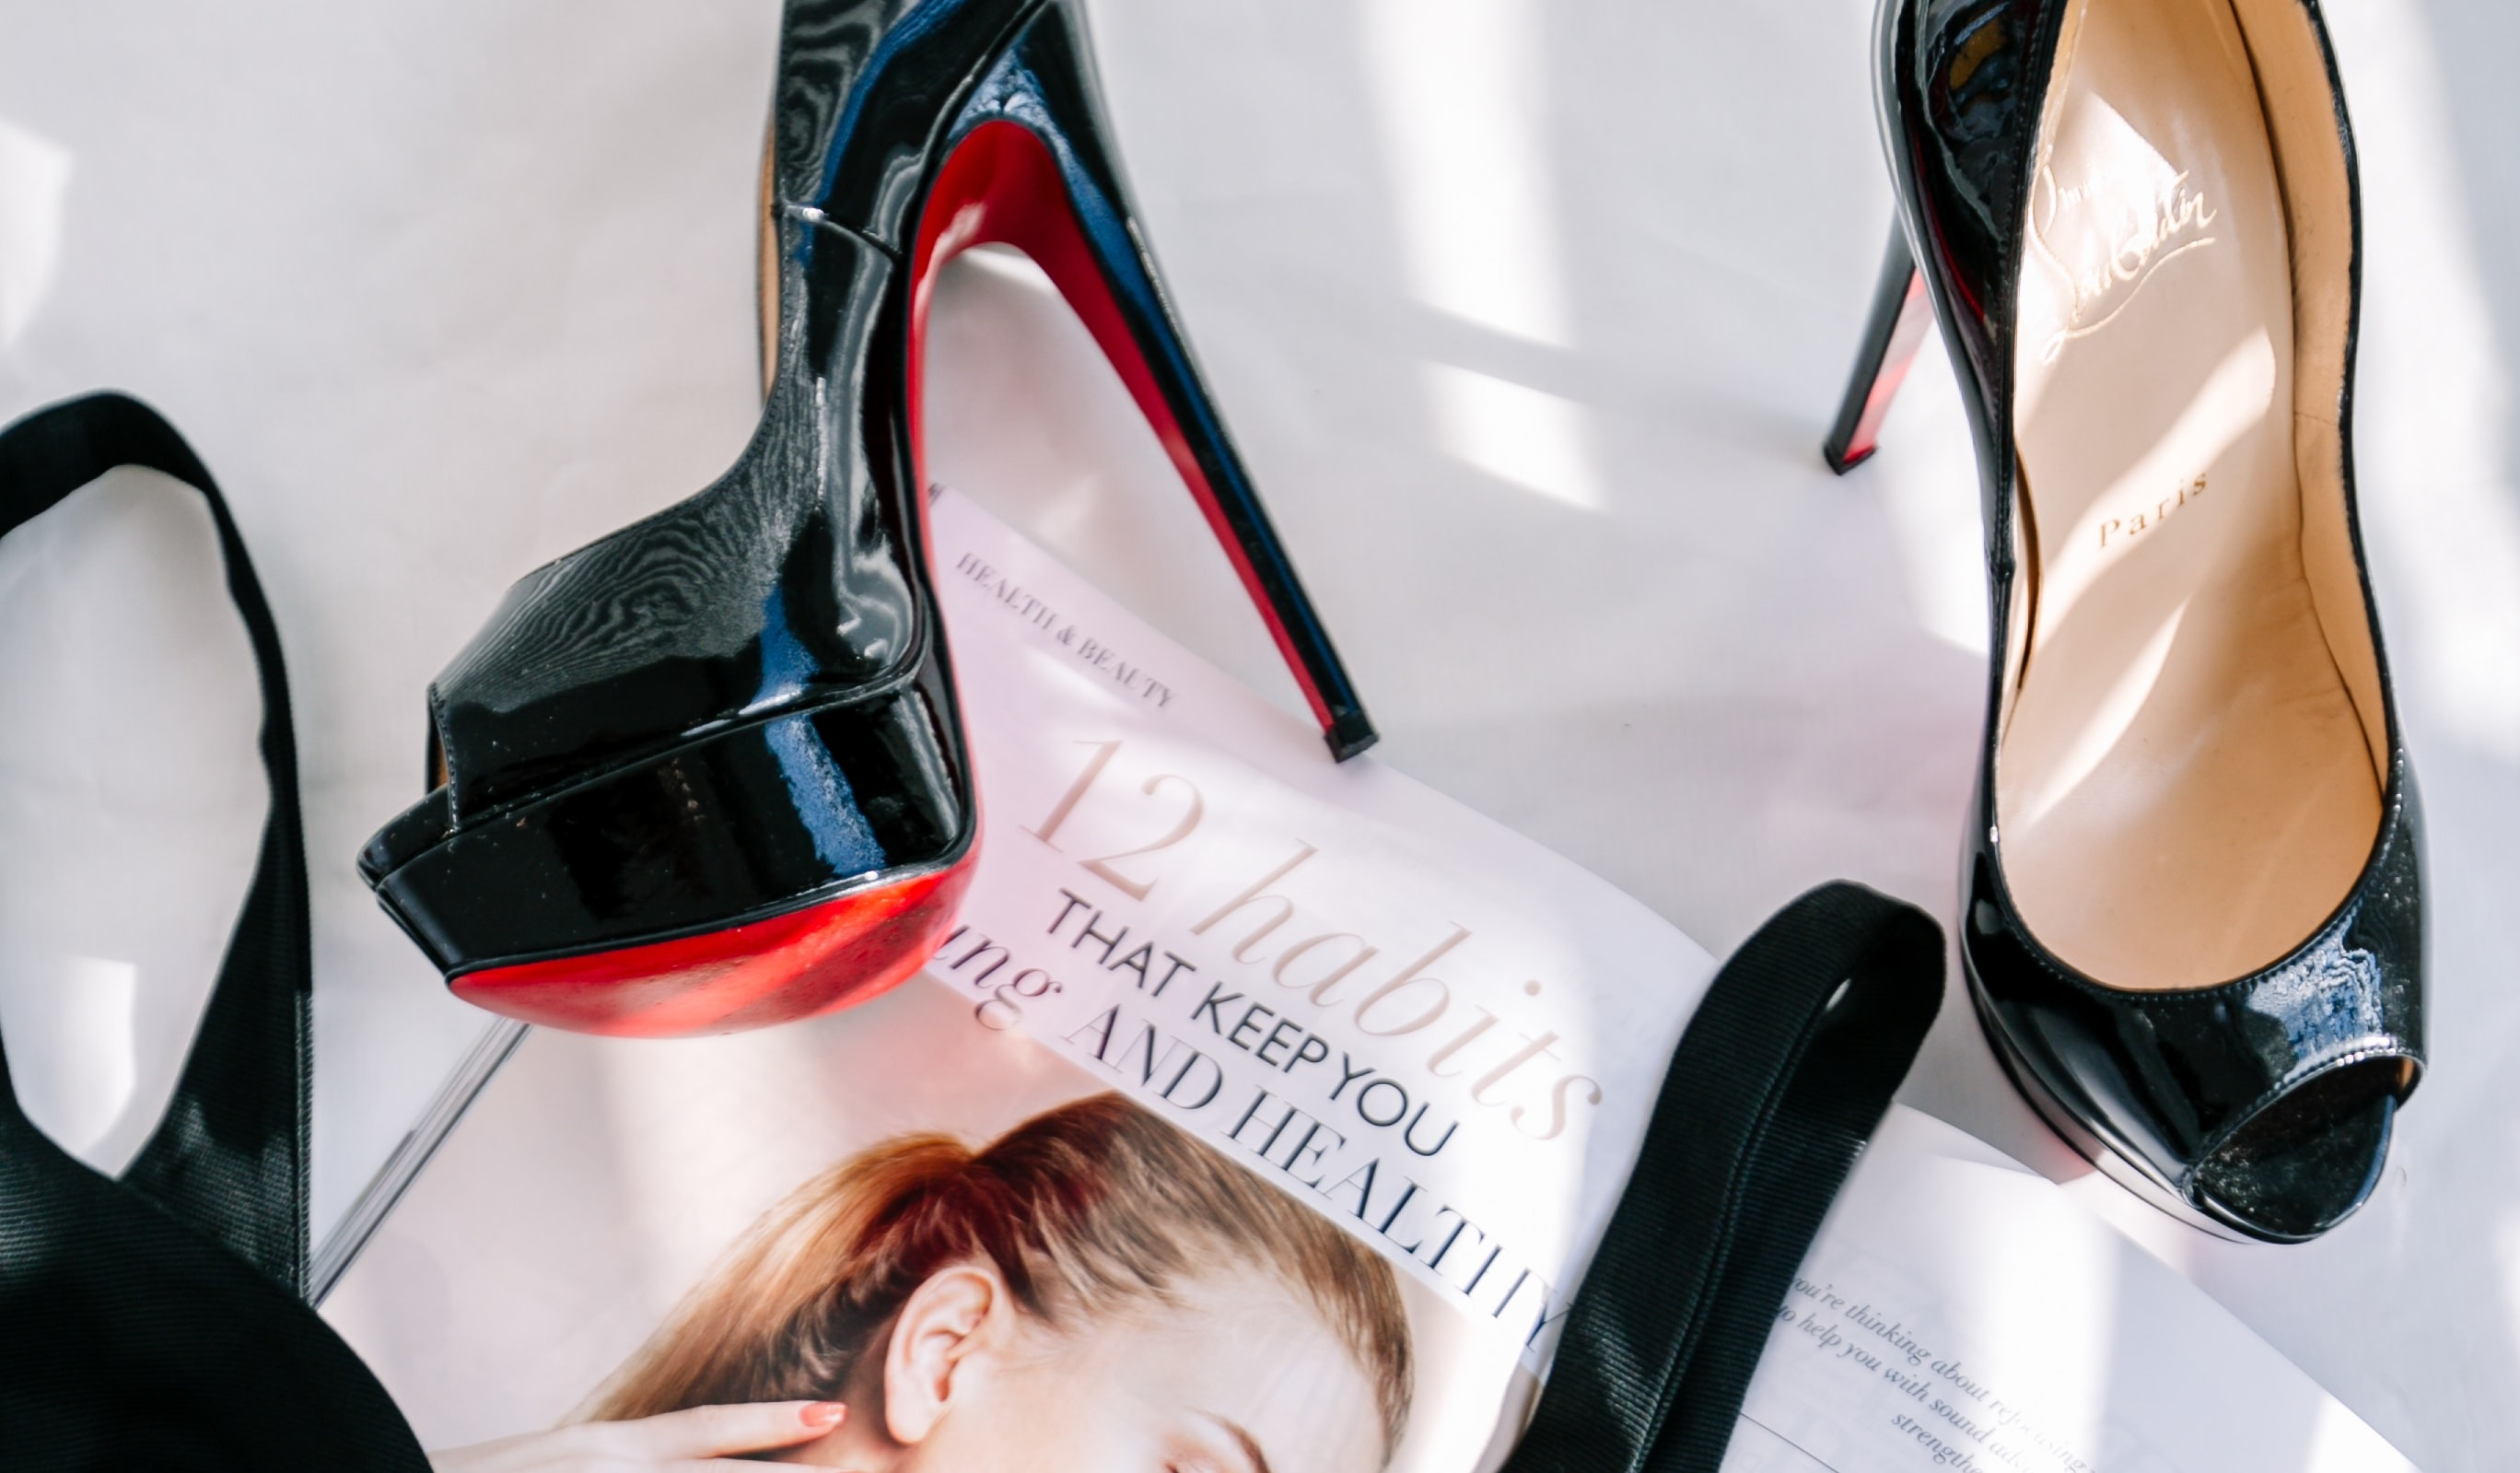 U.S. Trademark Protections for fashion icons